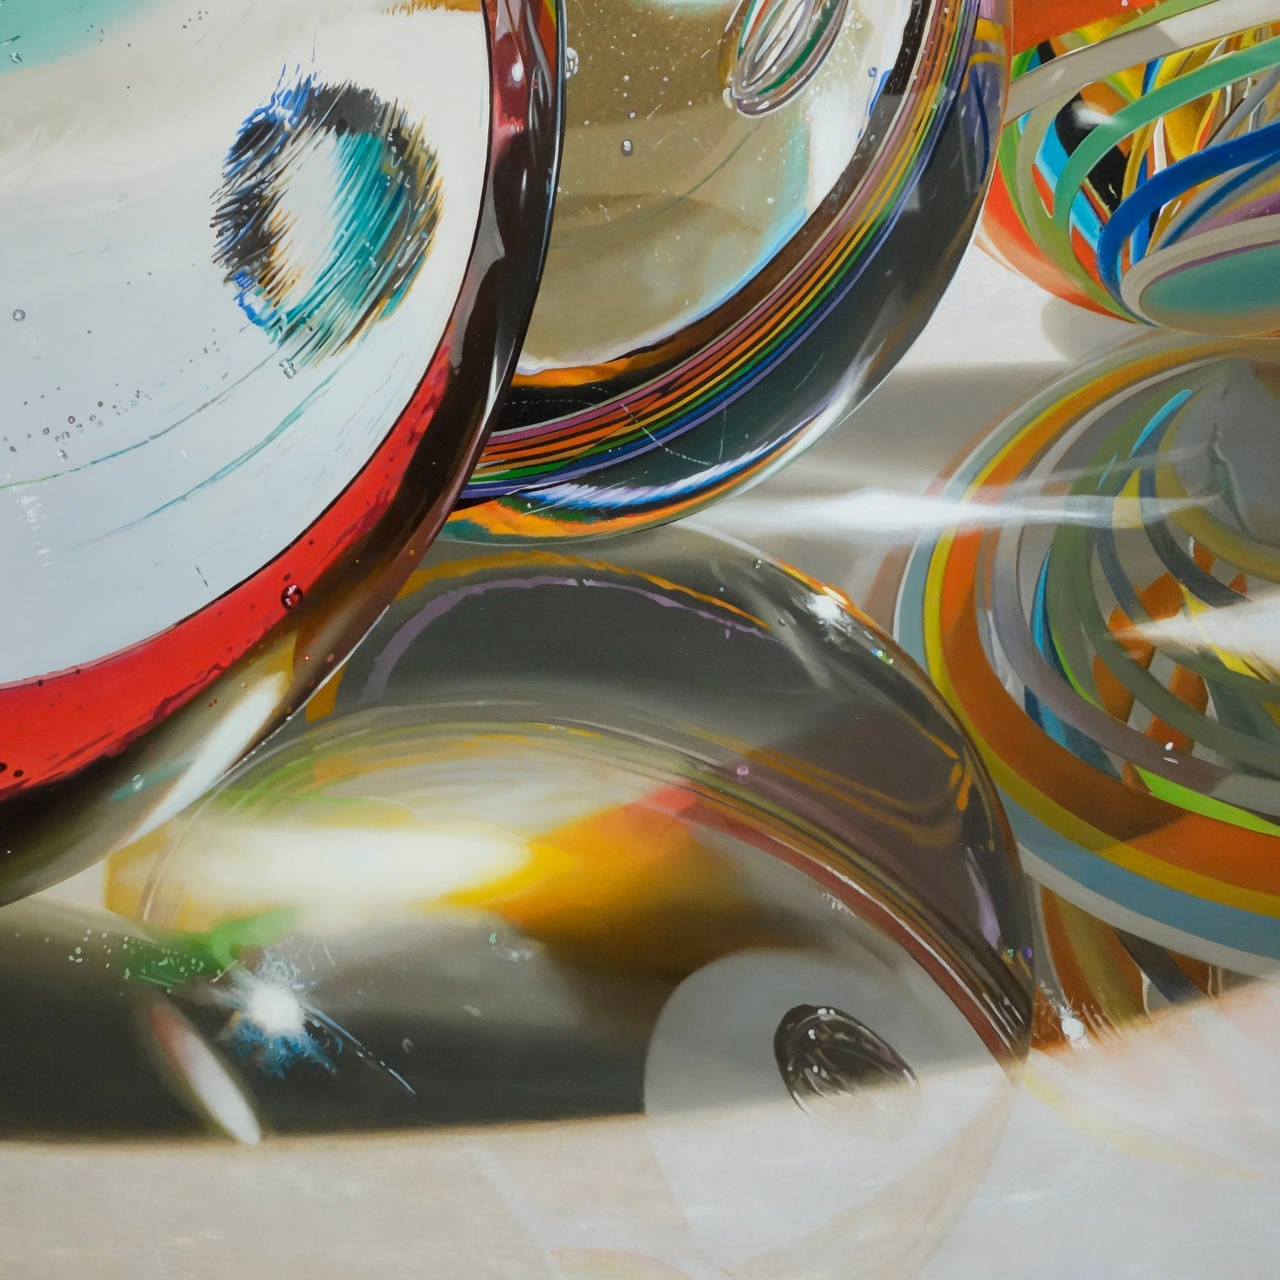 Photorealist artist Steve Mills paints extra large, excruciatingly detailed oil paintings depicting everyday objects like the Wall Street Journal and Glass Marbles.